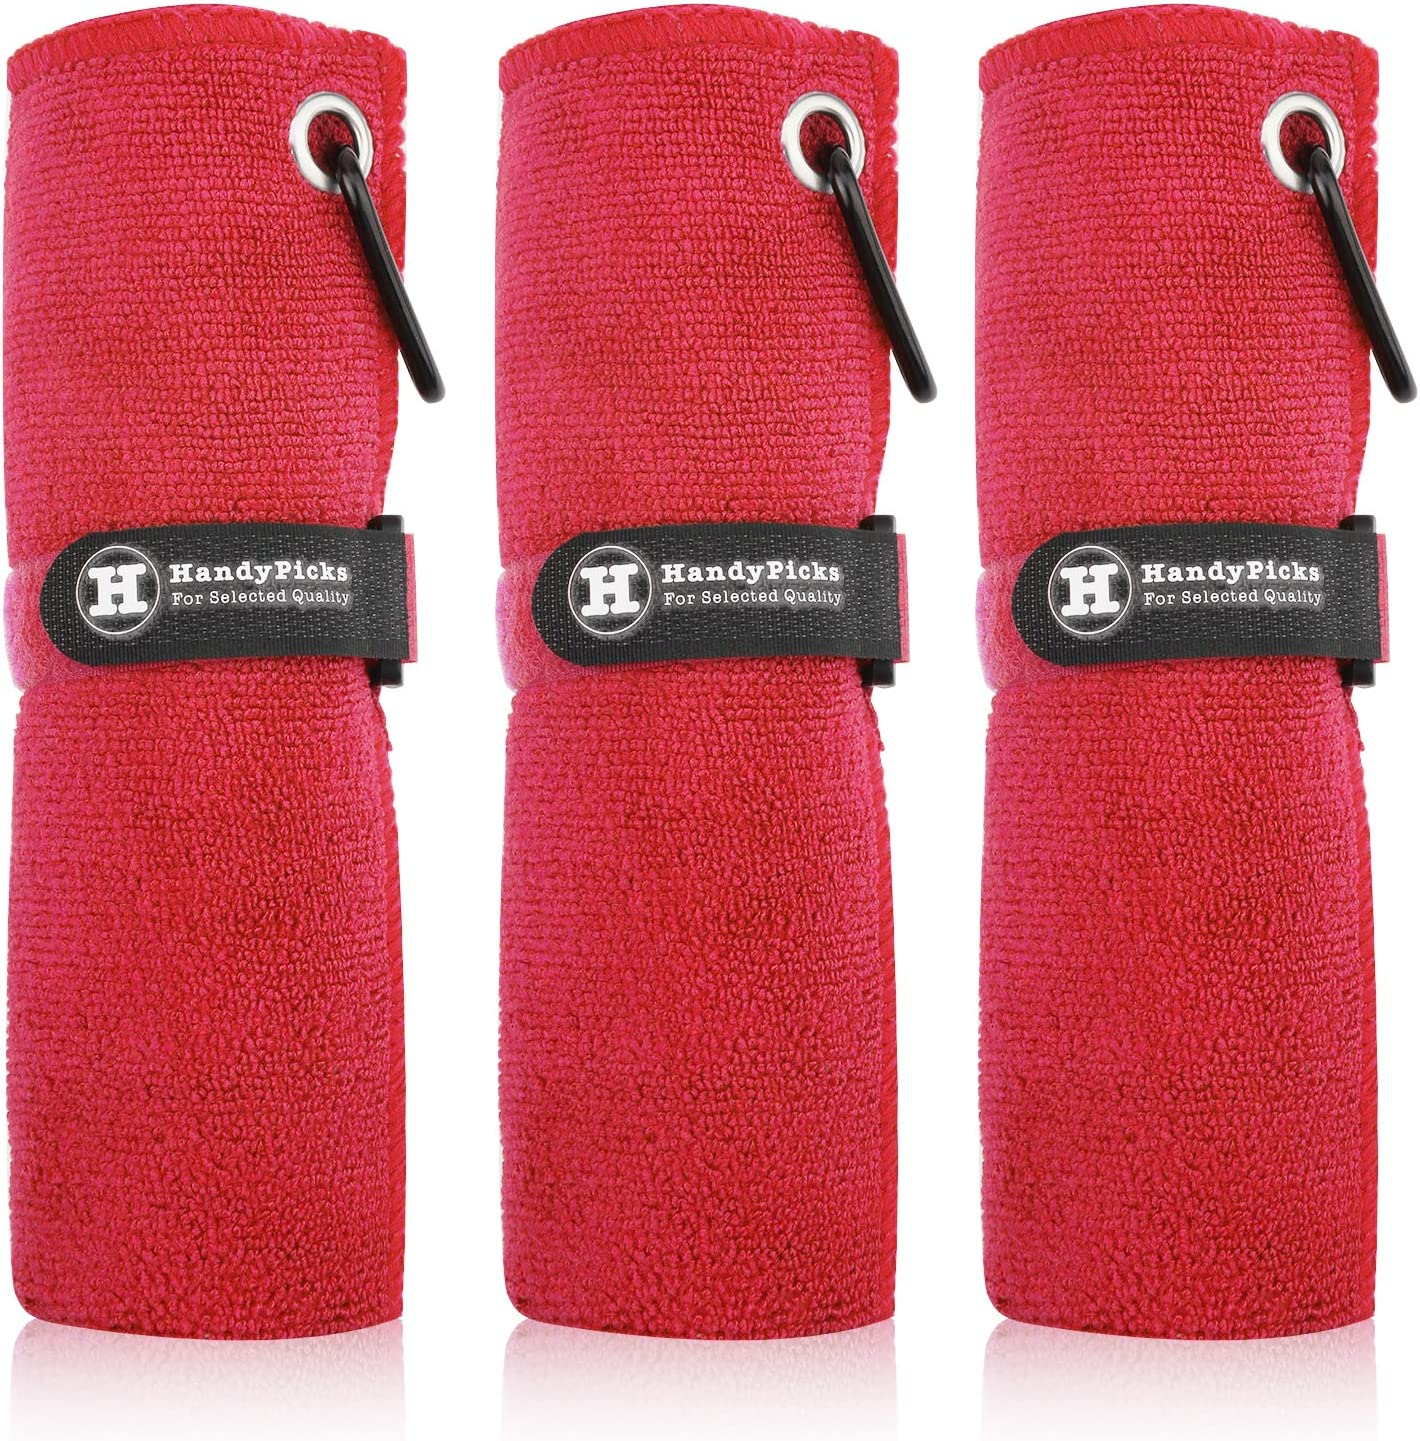 Handy Challenge the lowest price of Japan Picks Microfiber Golf Towel Cli X Carabiner Finally resale start with 16